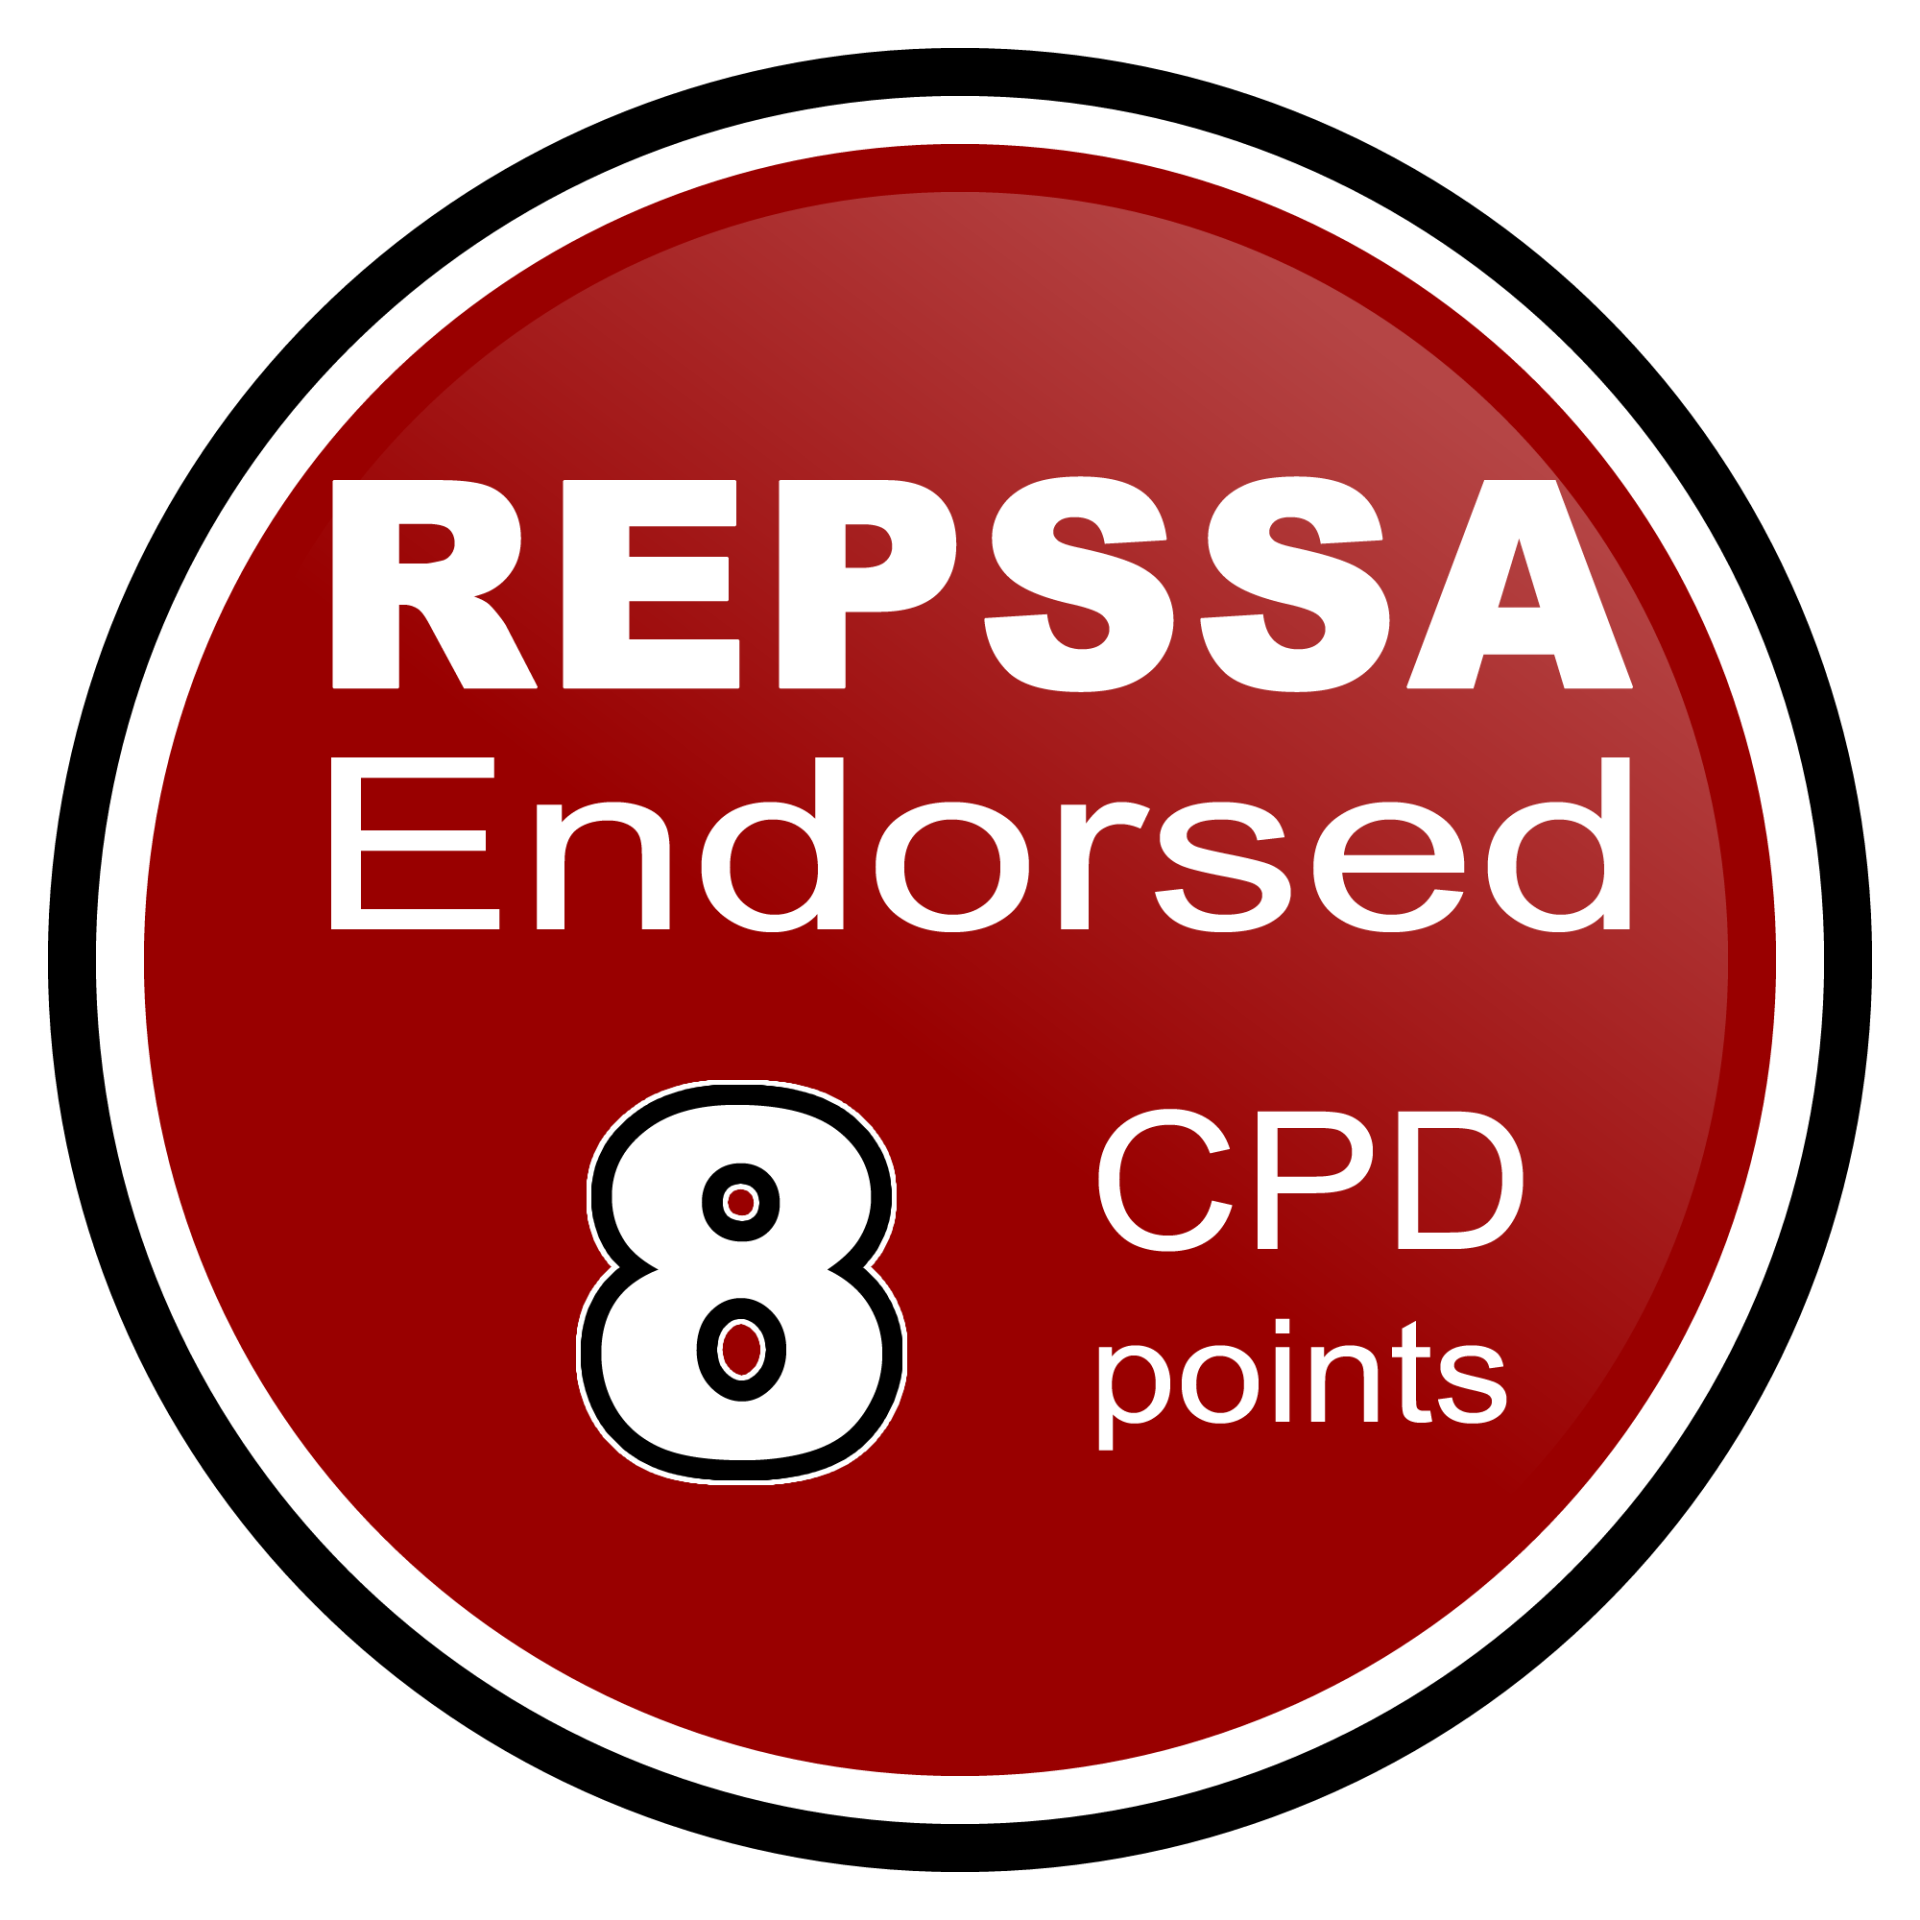 REPSSA 8 CPD points